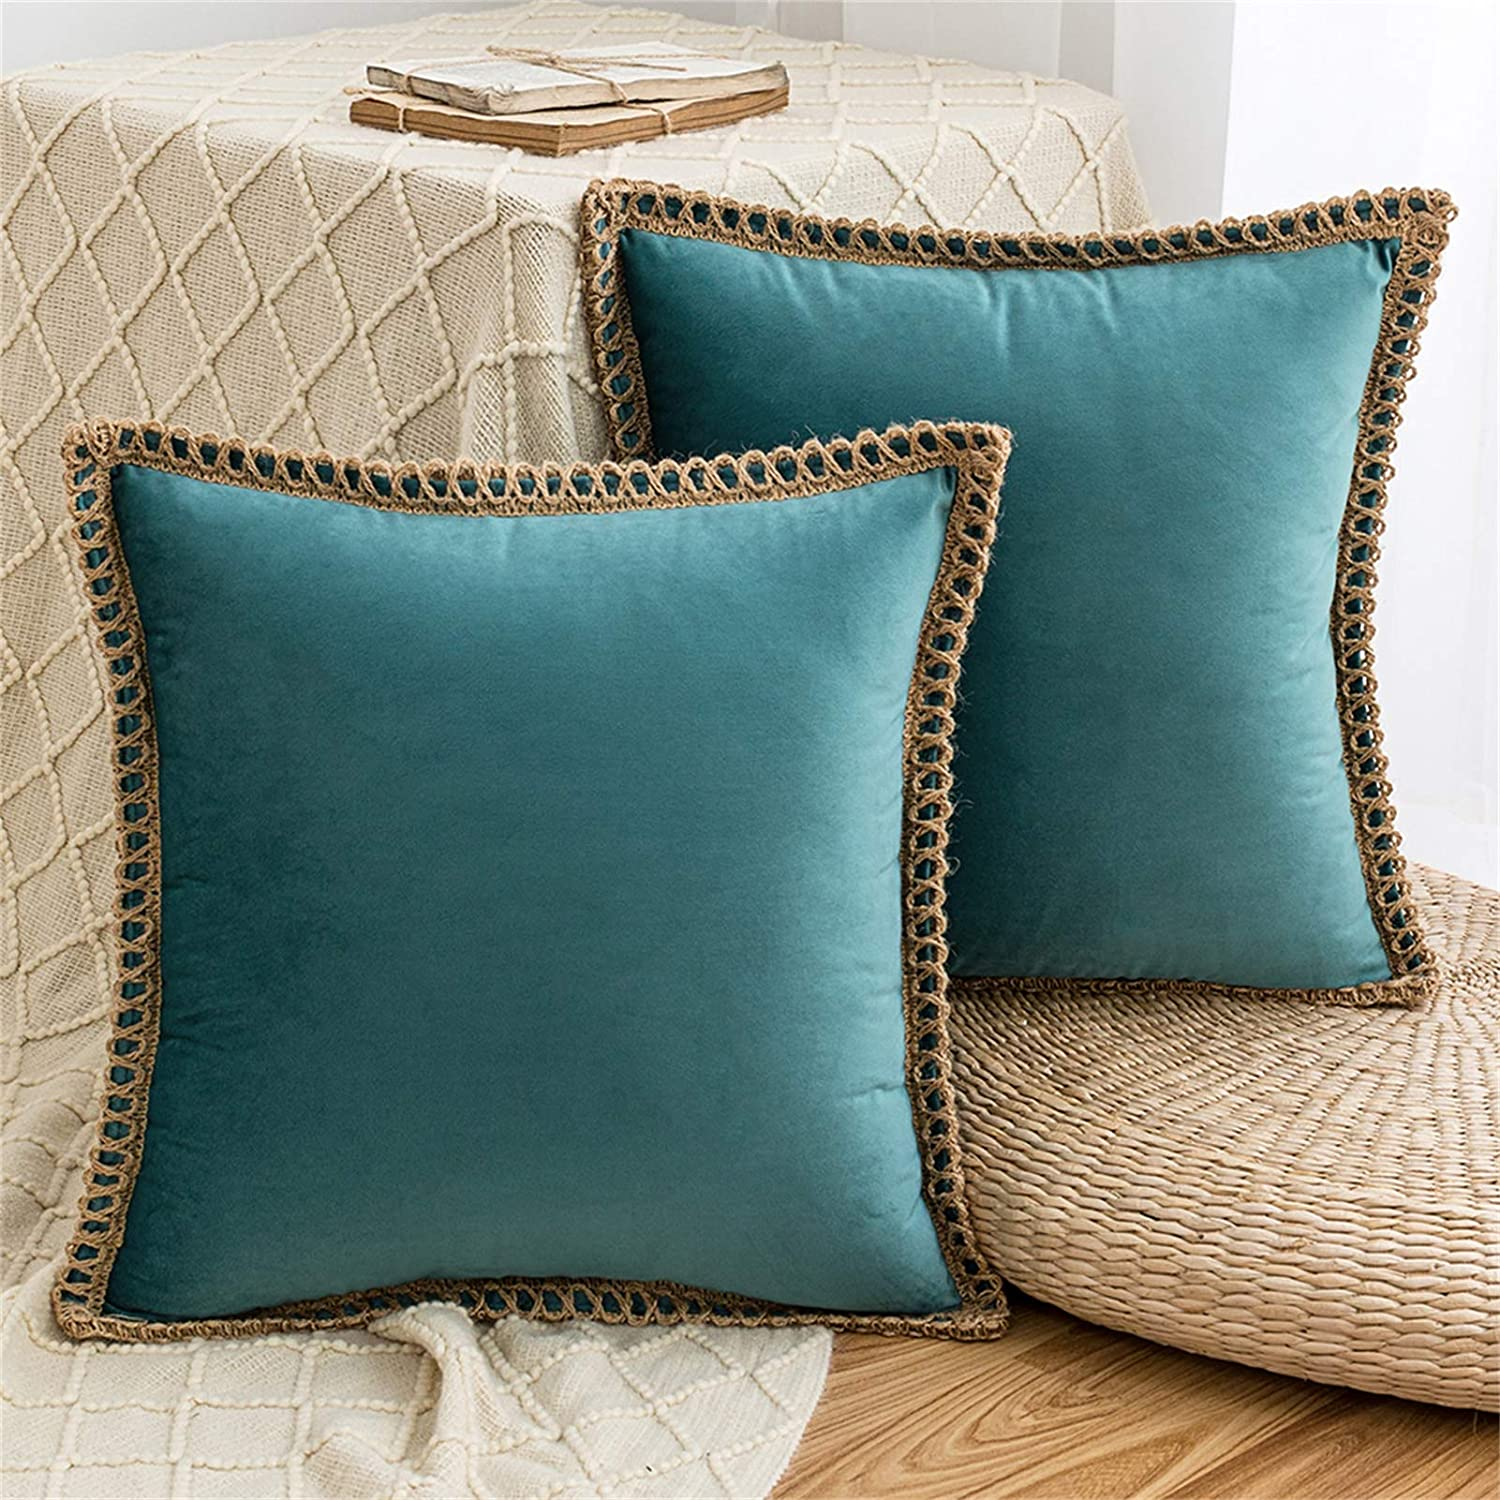 AQOTHES Pack of 2 Velvet Decorative Farmhouse Burlap Trimmed Tailored Edges Decor Pillow Cover Cushion Throw Pillows for Couch Sofa, 18 x 18 Inch, Teal